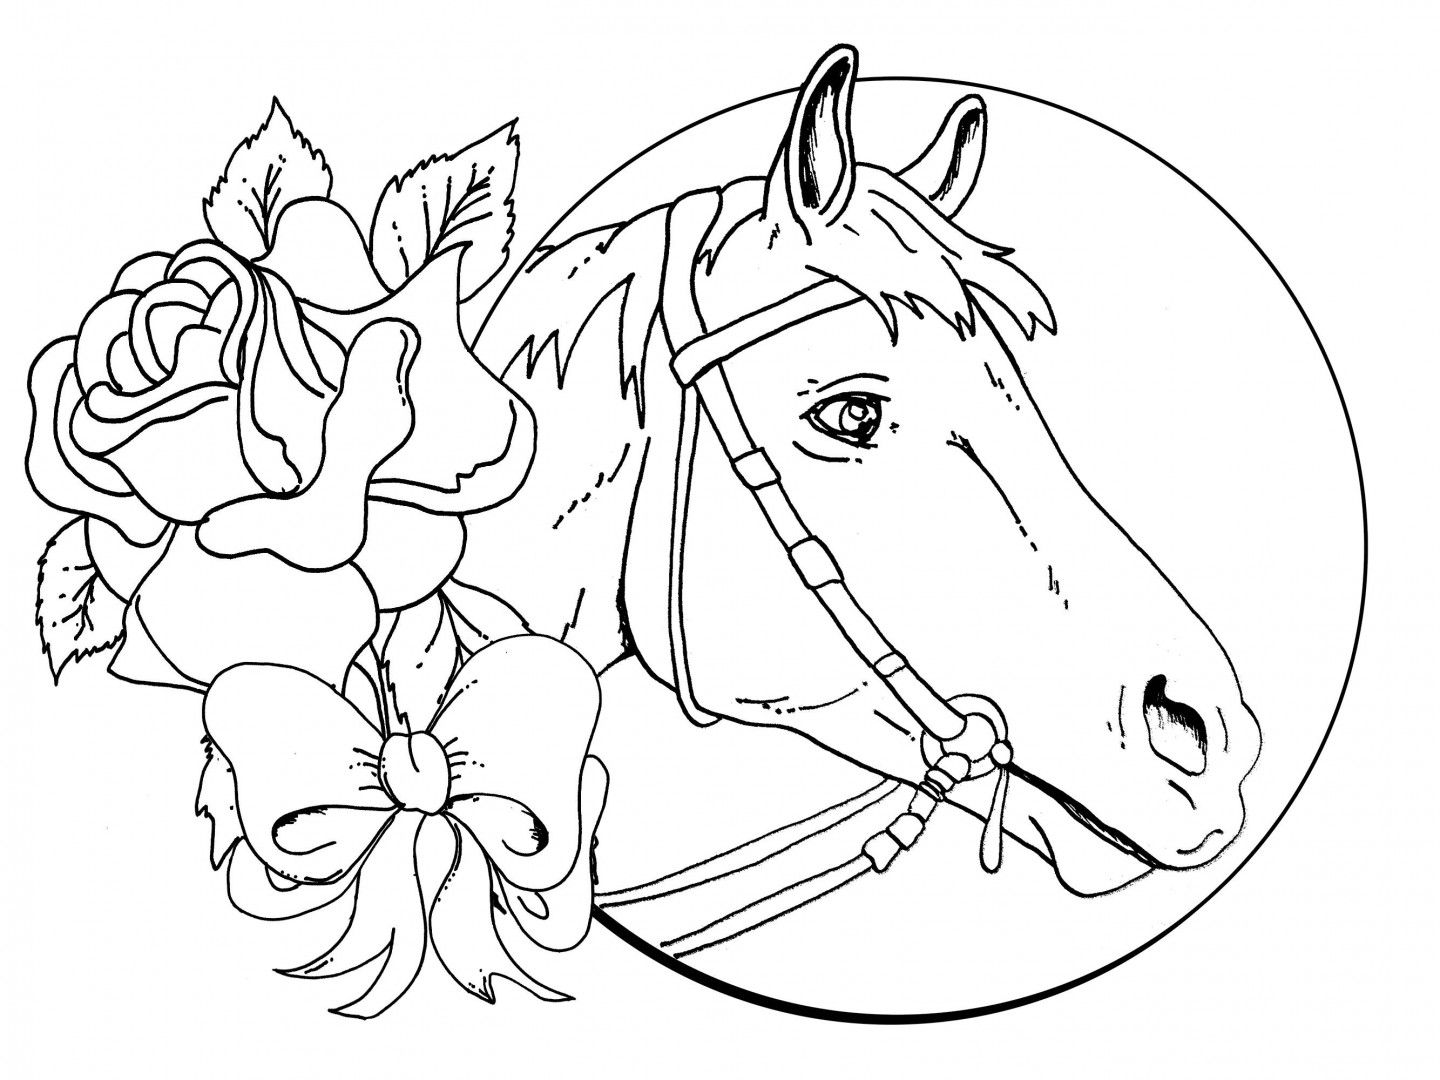 http://colorings.co/coloring-pages-for-girls-8-and-up-9/ | Colorings ...